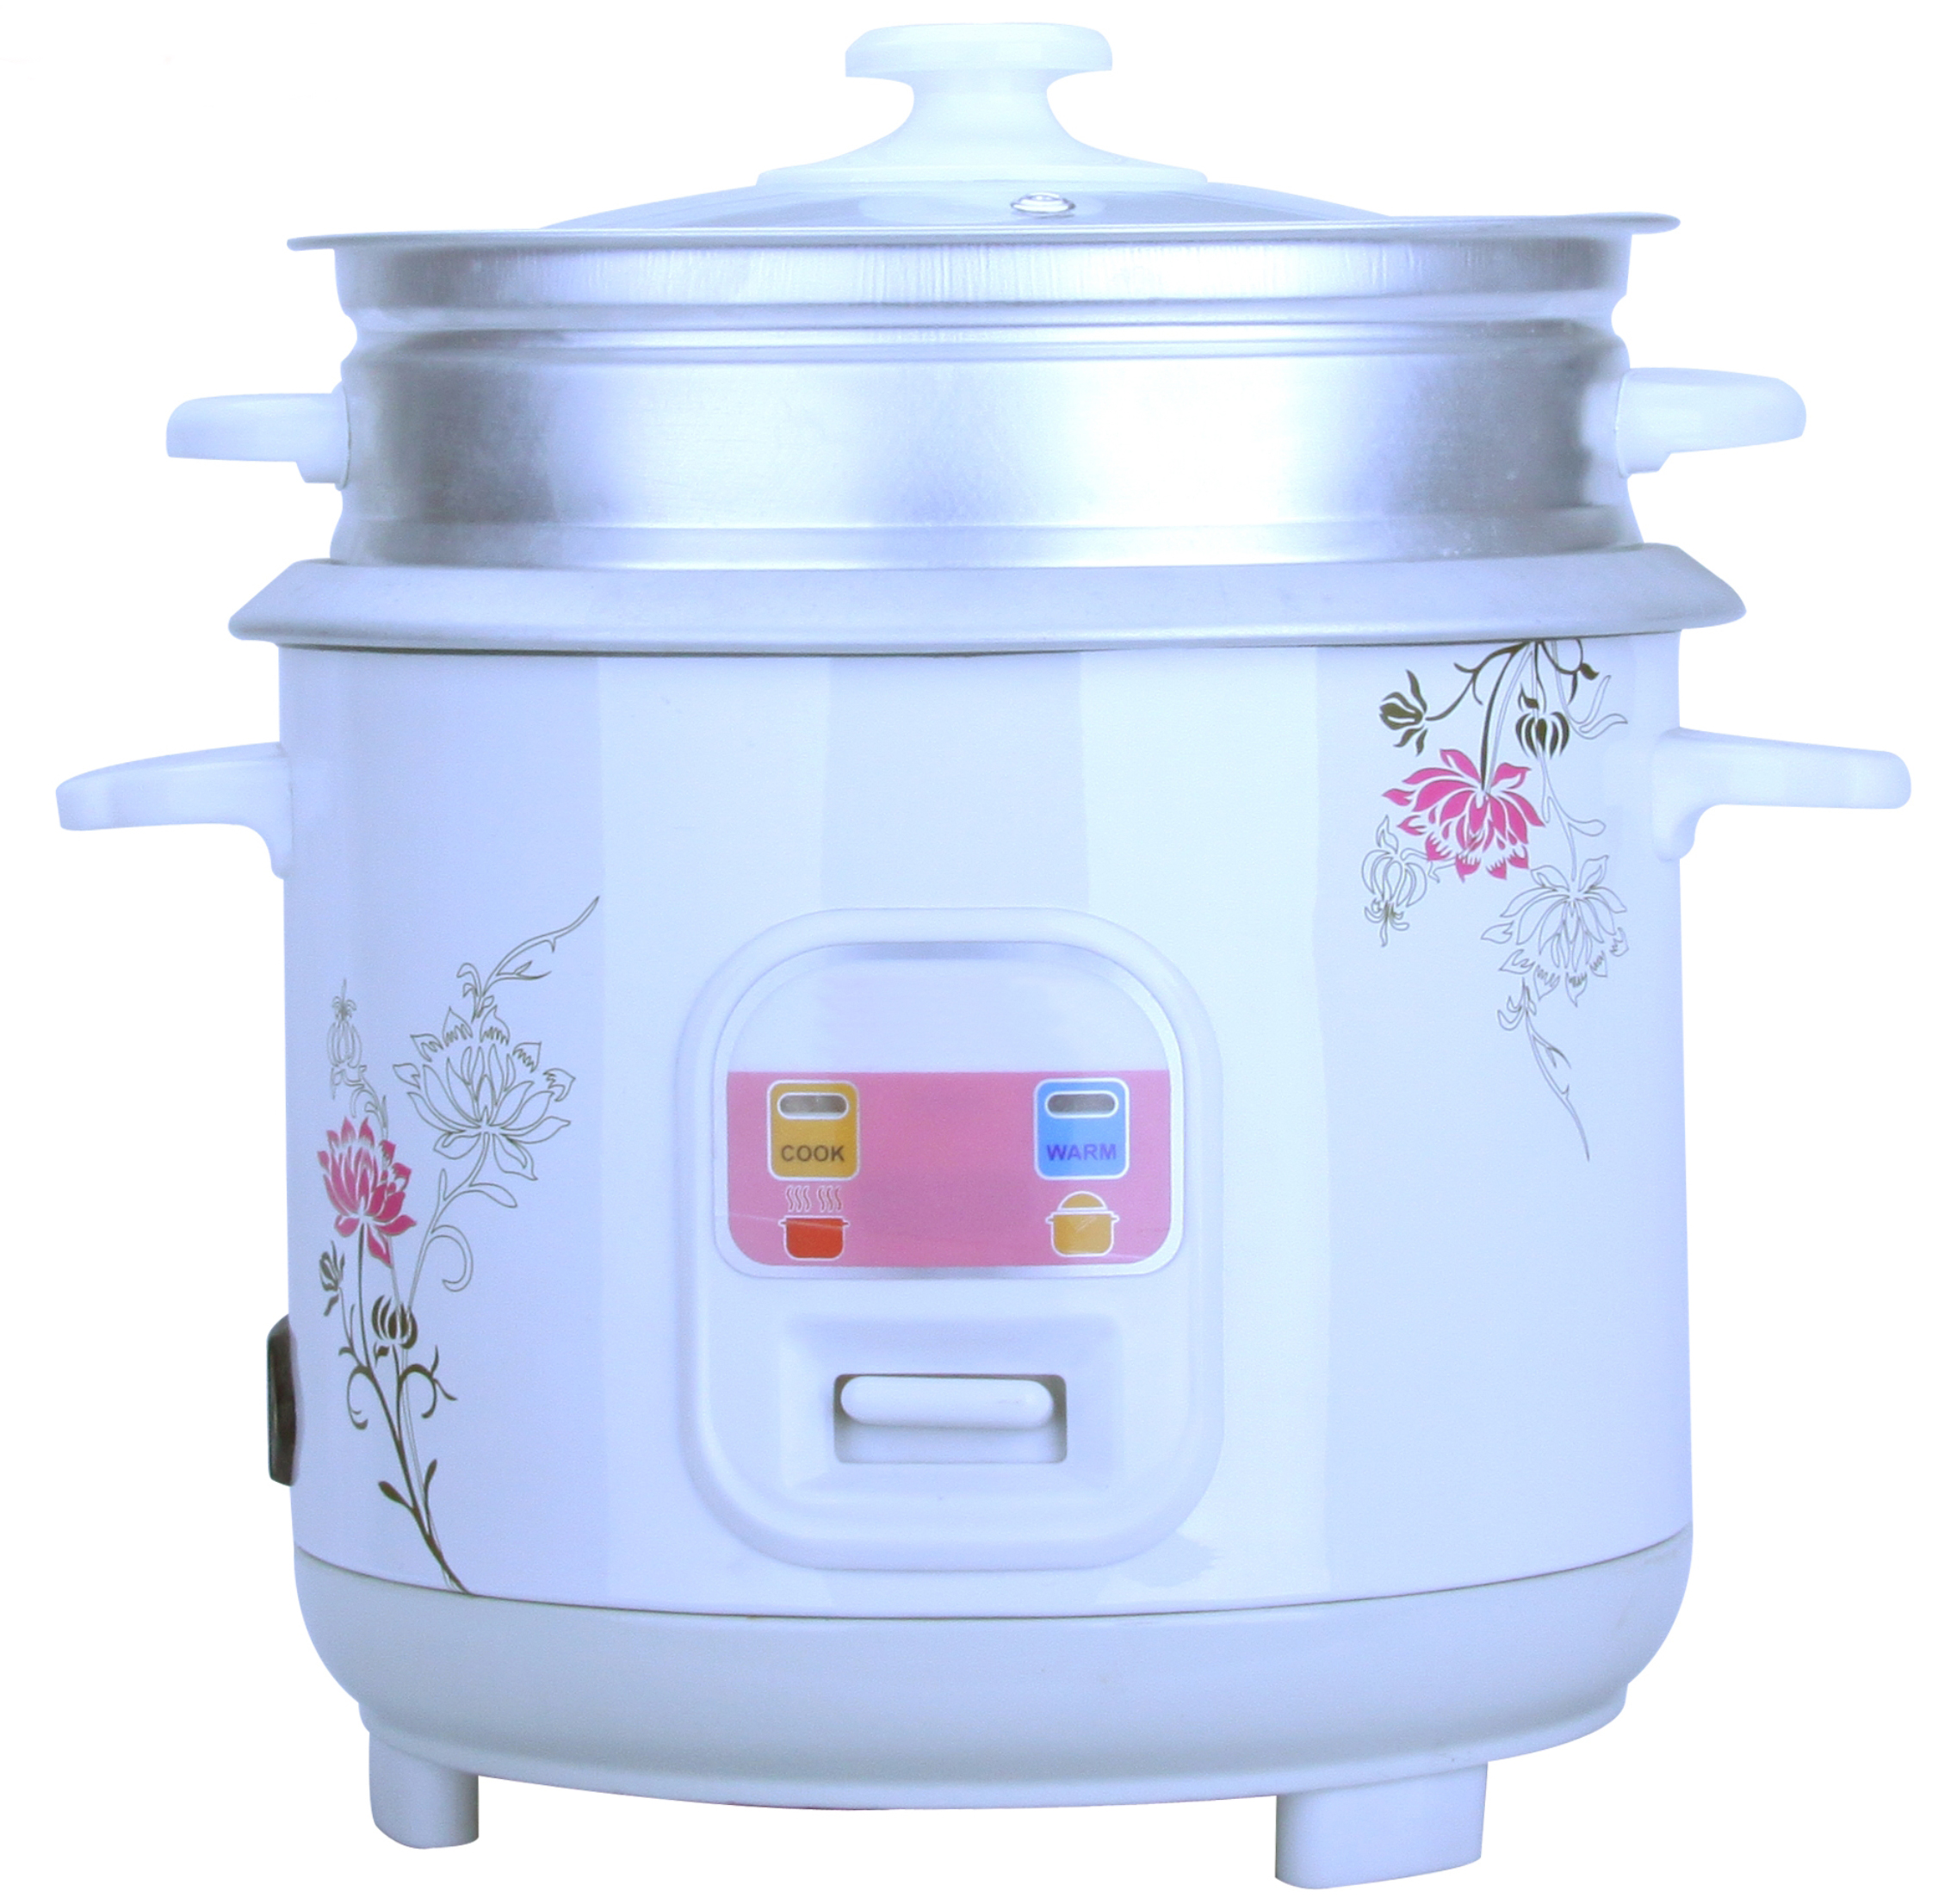 Straight type rice cooker TPZB50-01